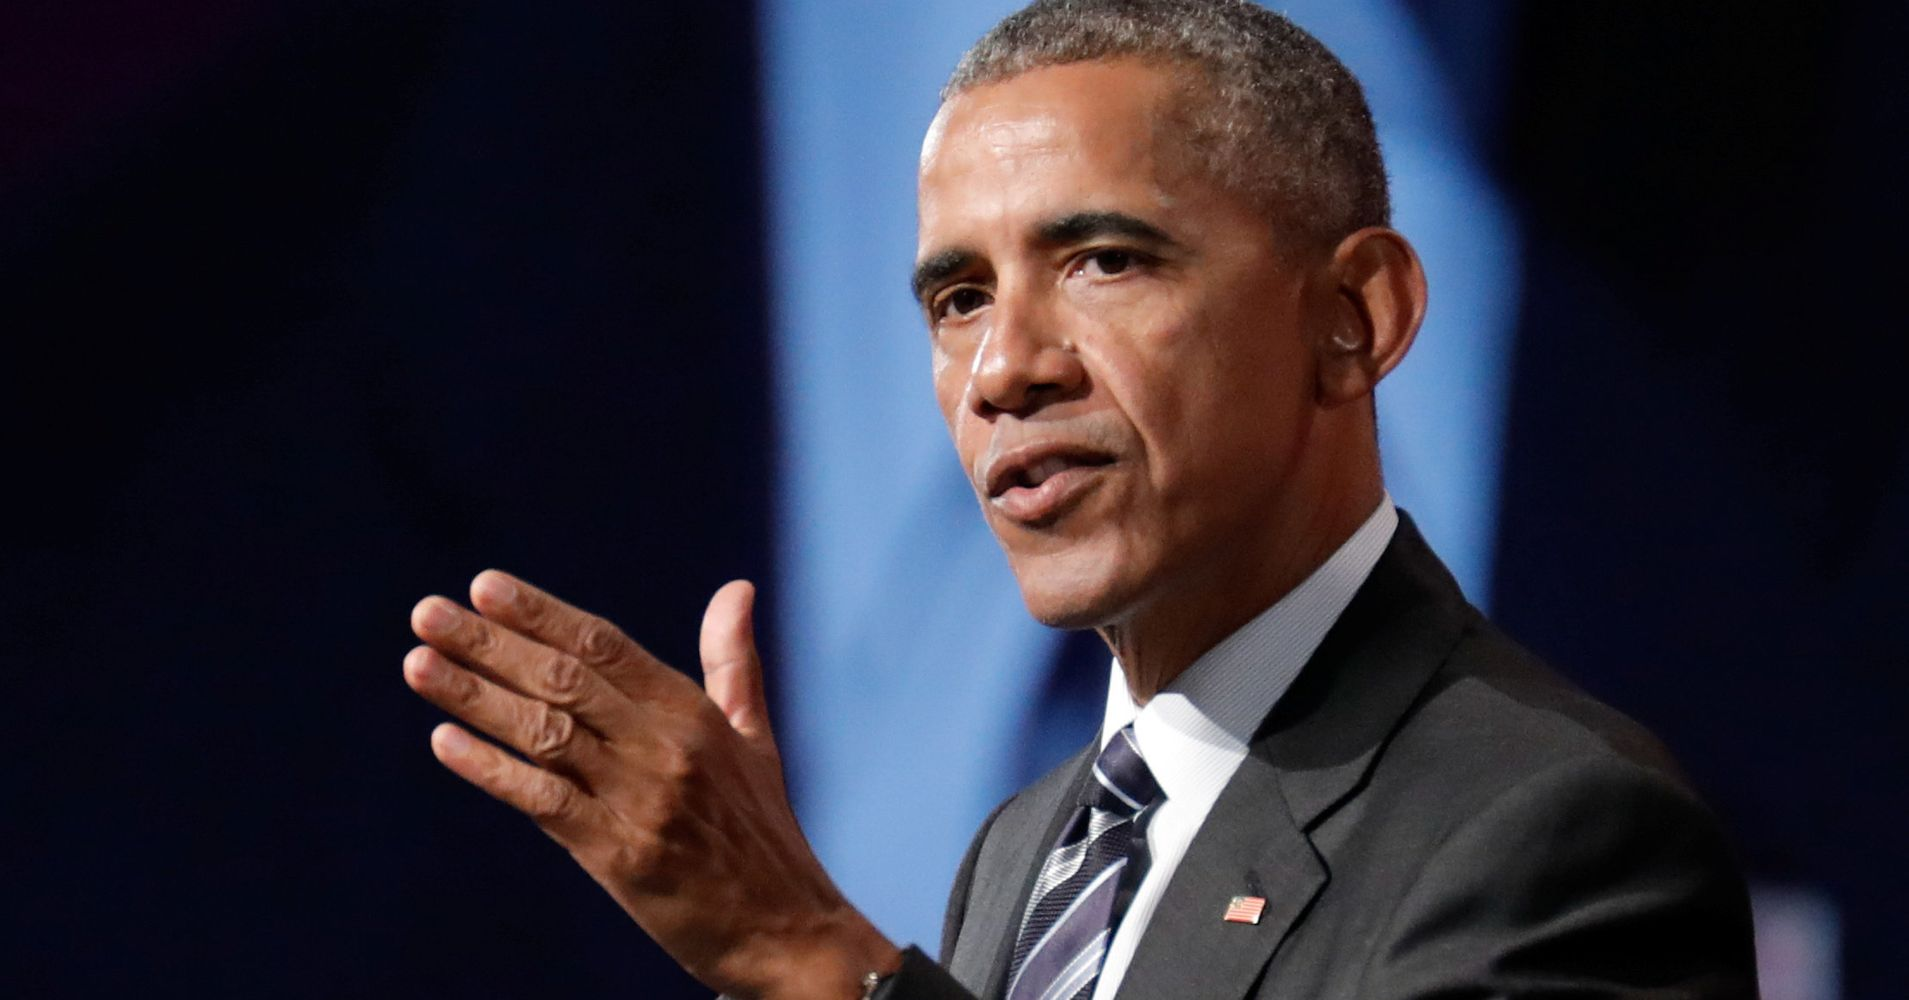 Obama Responds To Charlottesville Violence With A Quote From Nelson Mandela